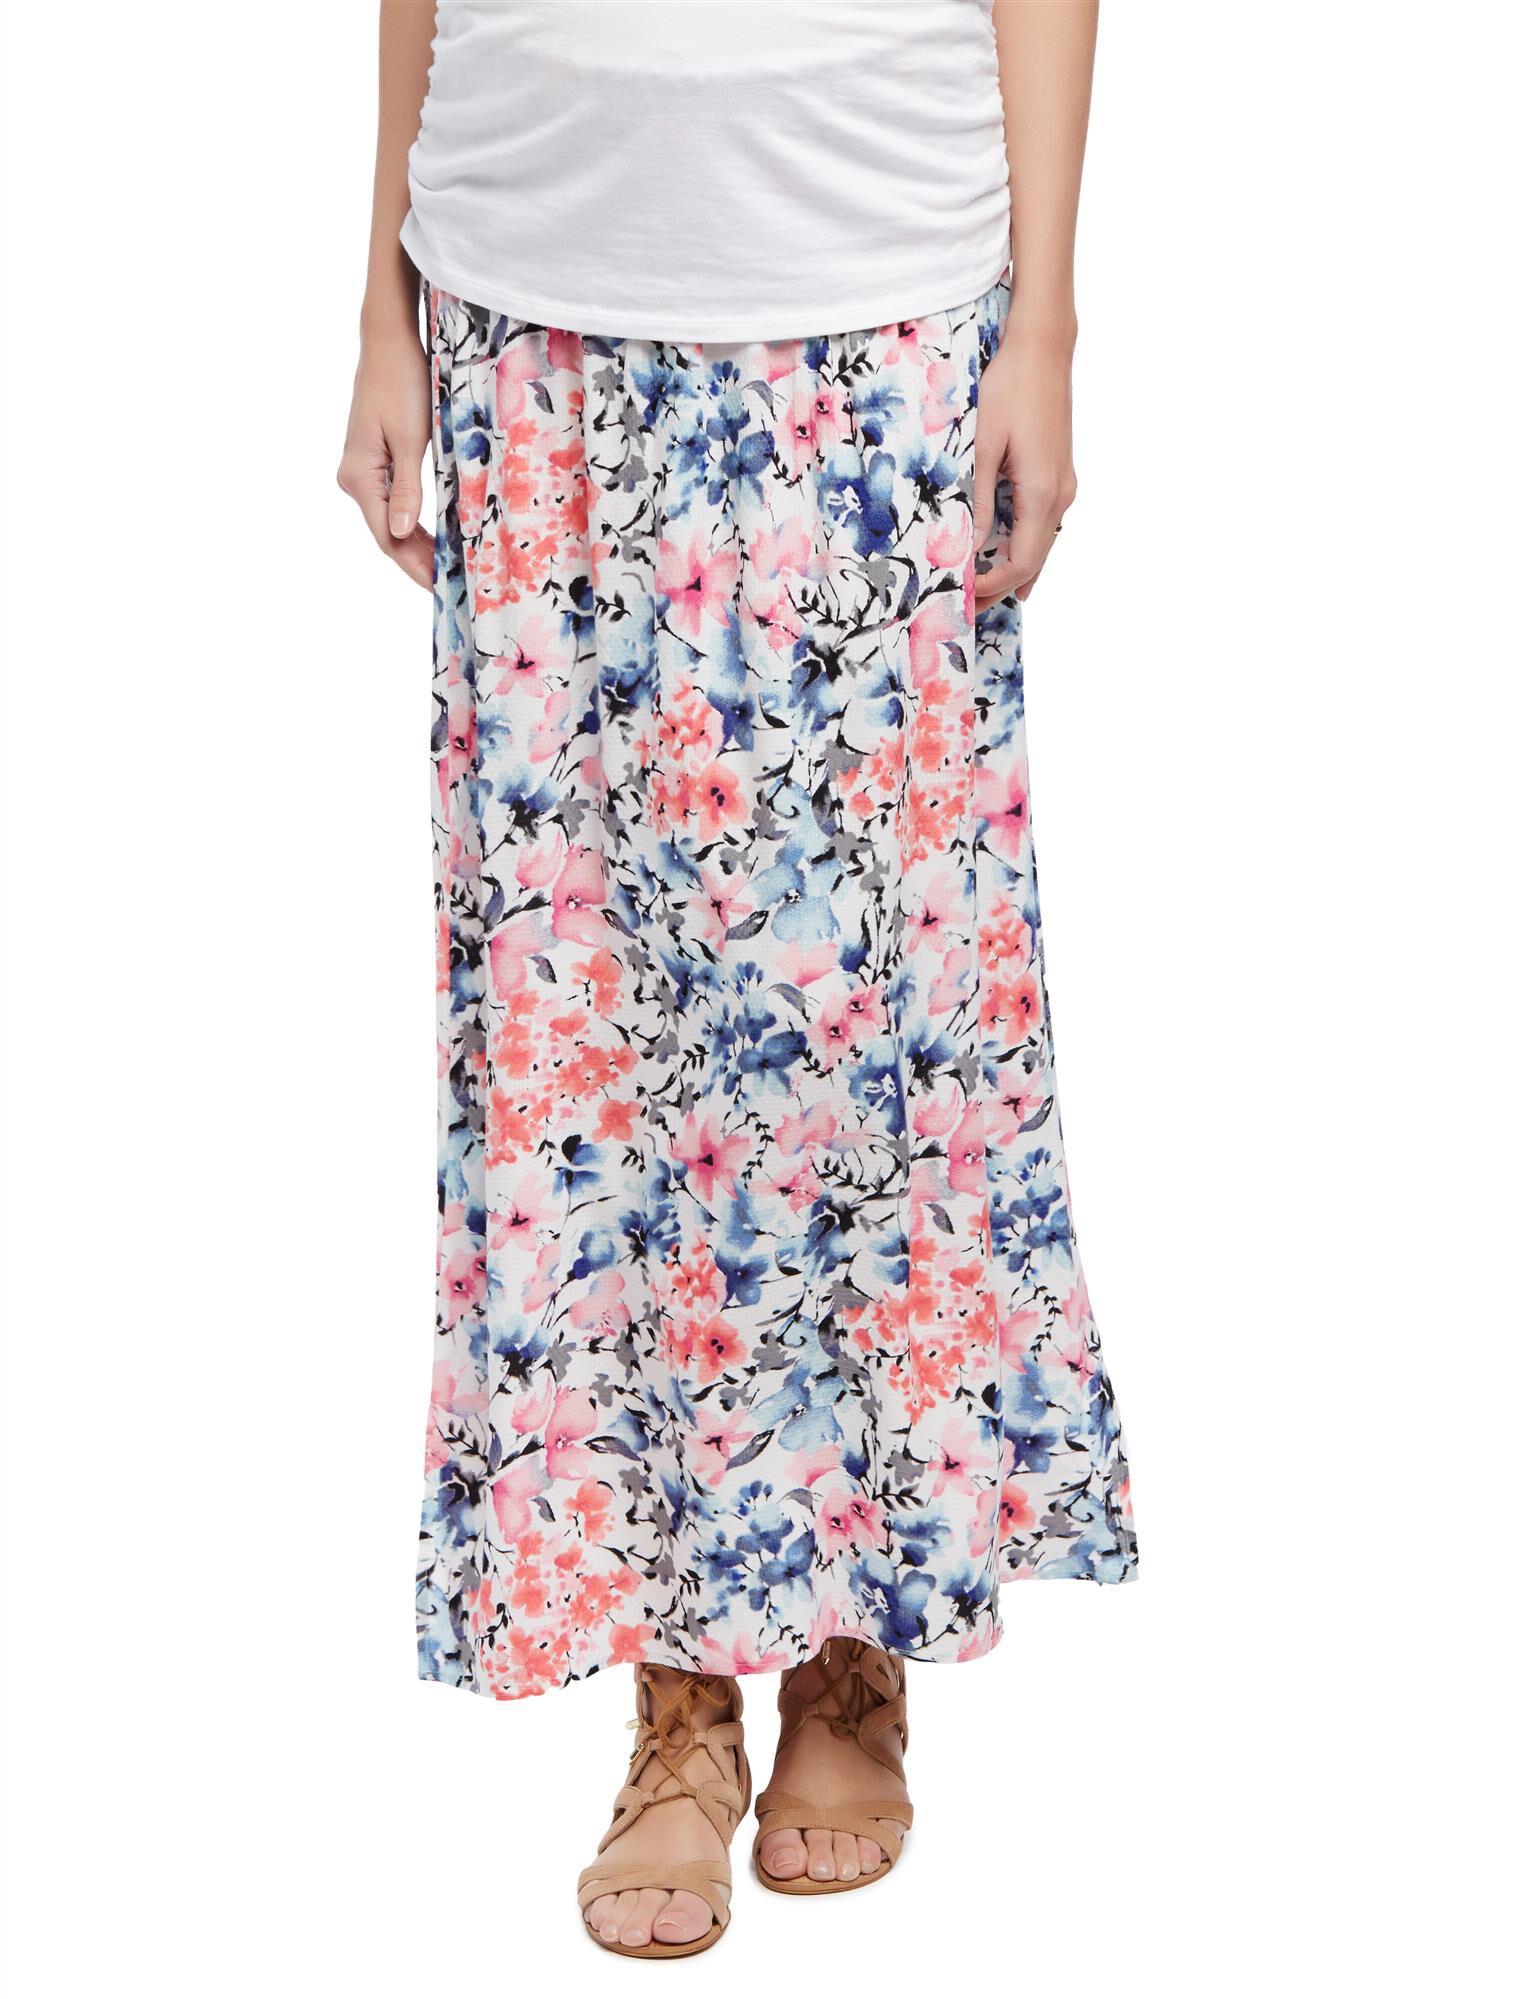 Under Belly Smock Waist Maternity Maxi Skirt- Floral Print